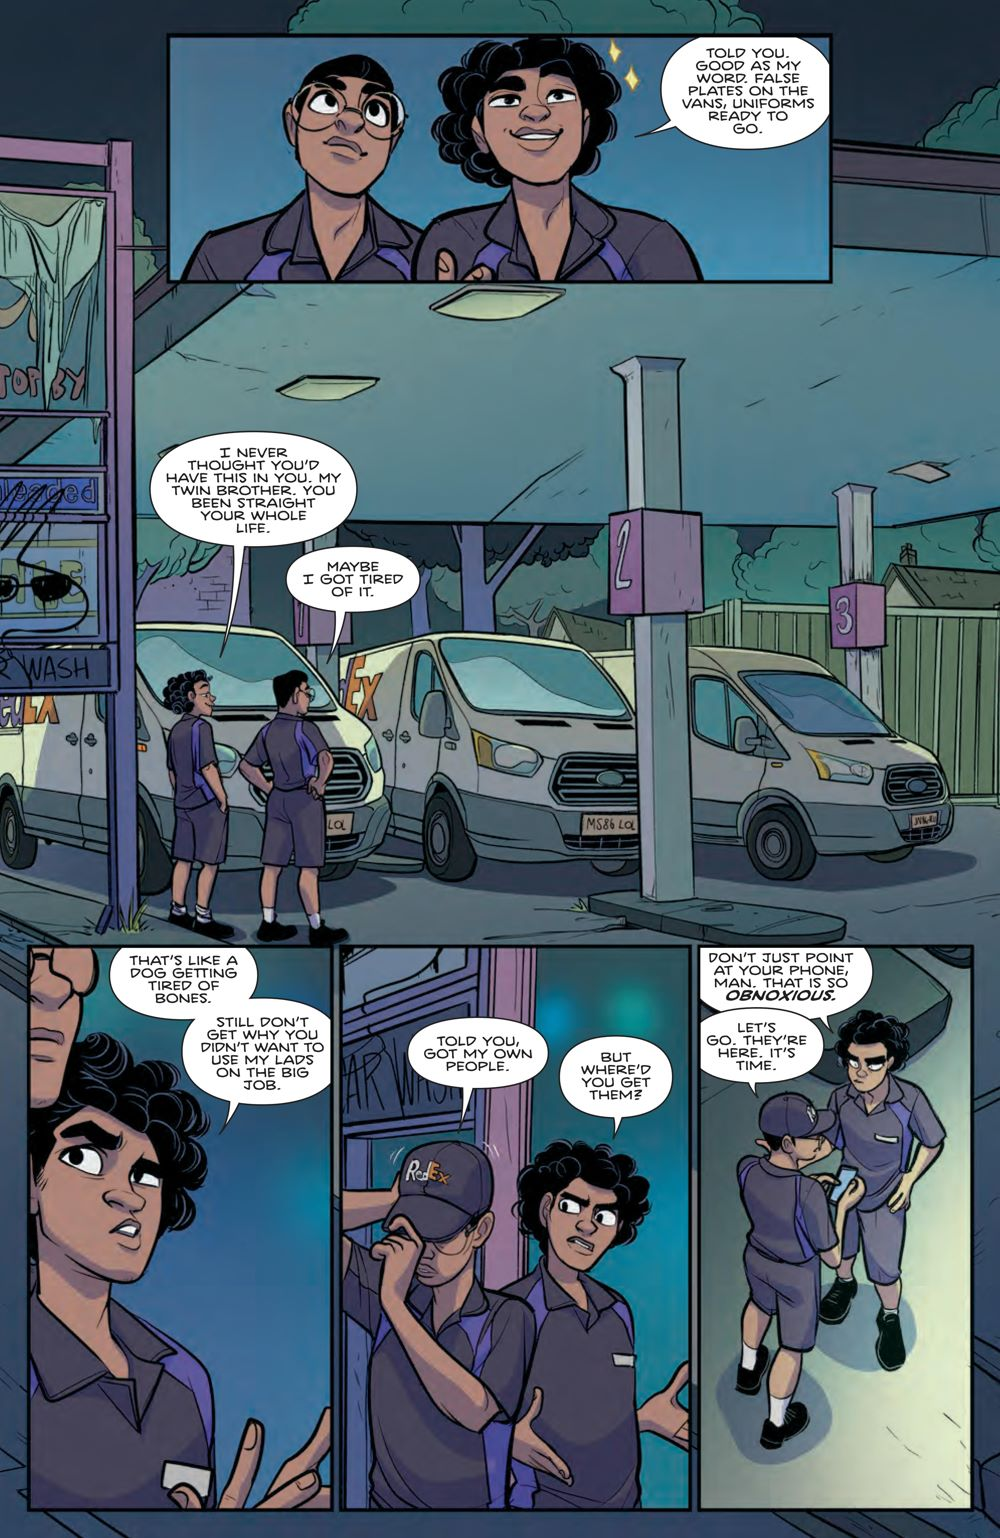 WickedThings_004_PRESS_4 ComicList Previews: WICKED THINGS #4